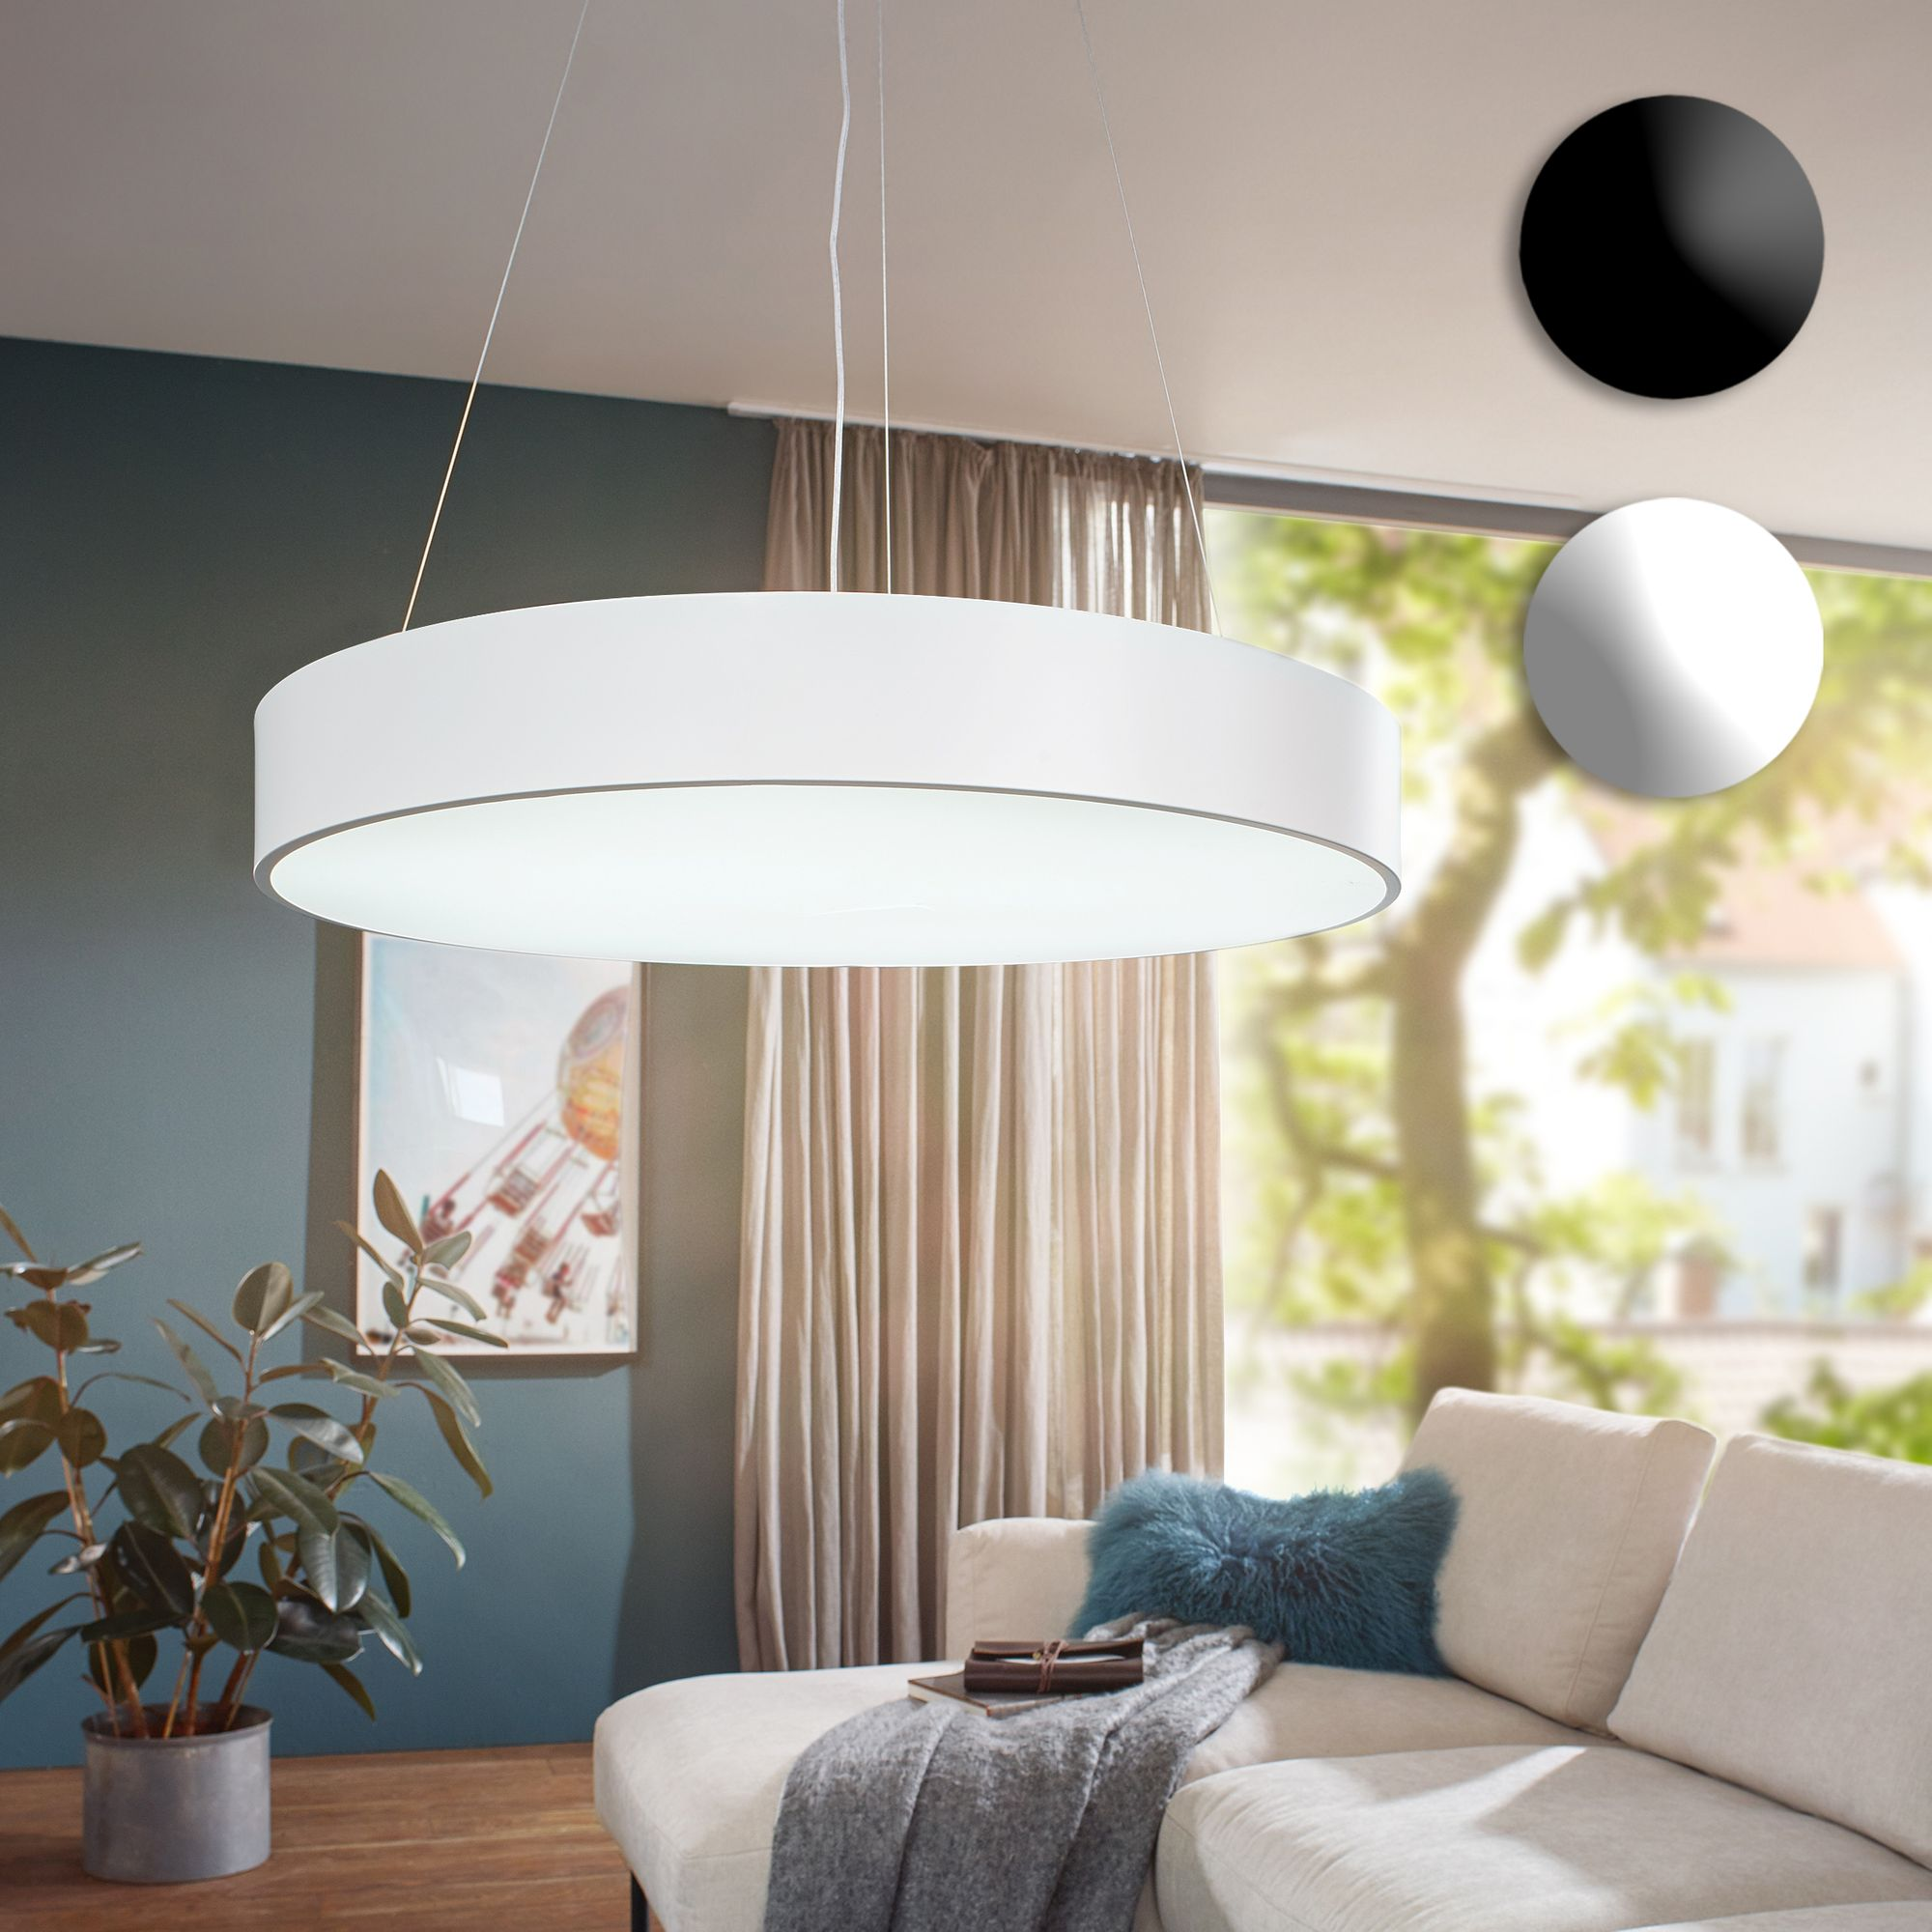 led deckenleuchte 92w rund pendelleuchte 7820 lumen deckenlampe a h ngelampe ebay. Black Bedroom Furniture Sets. Home Design Ideas